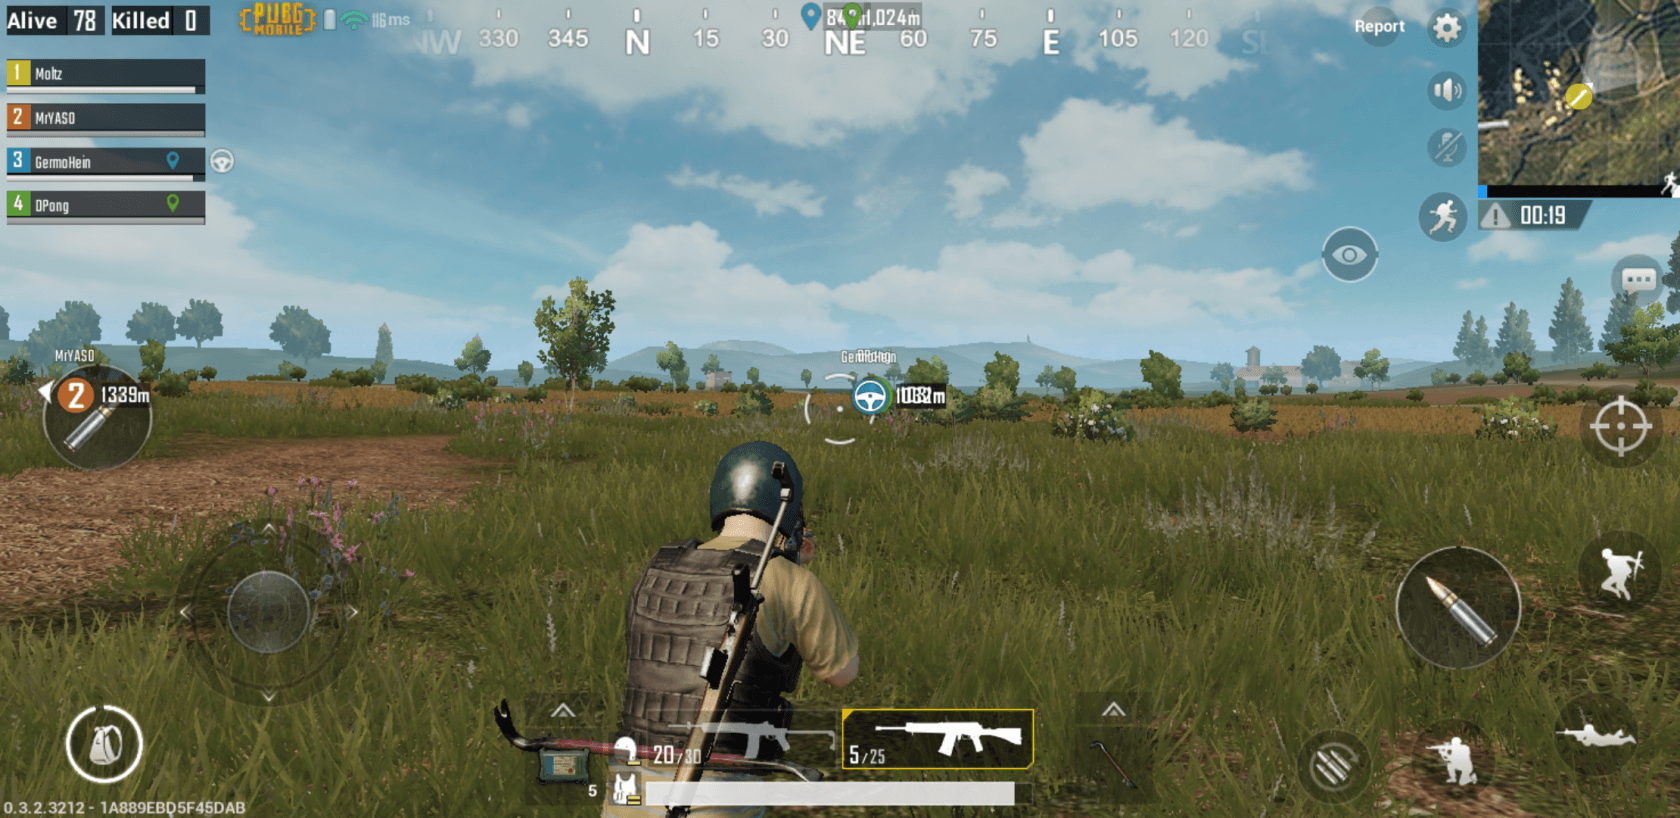 PUBG Mobile Lite is a faster, lightweight alternative for low-end